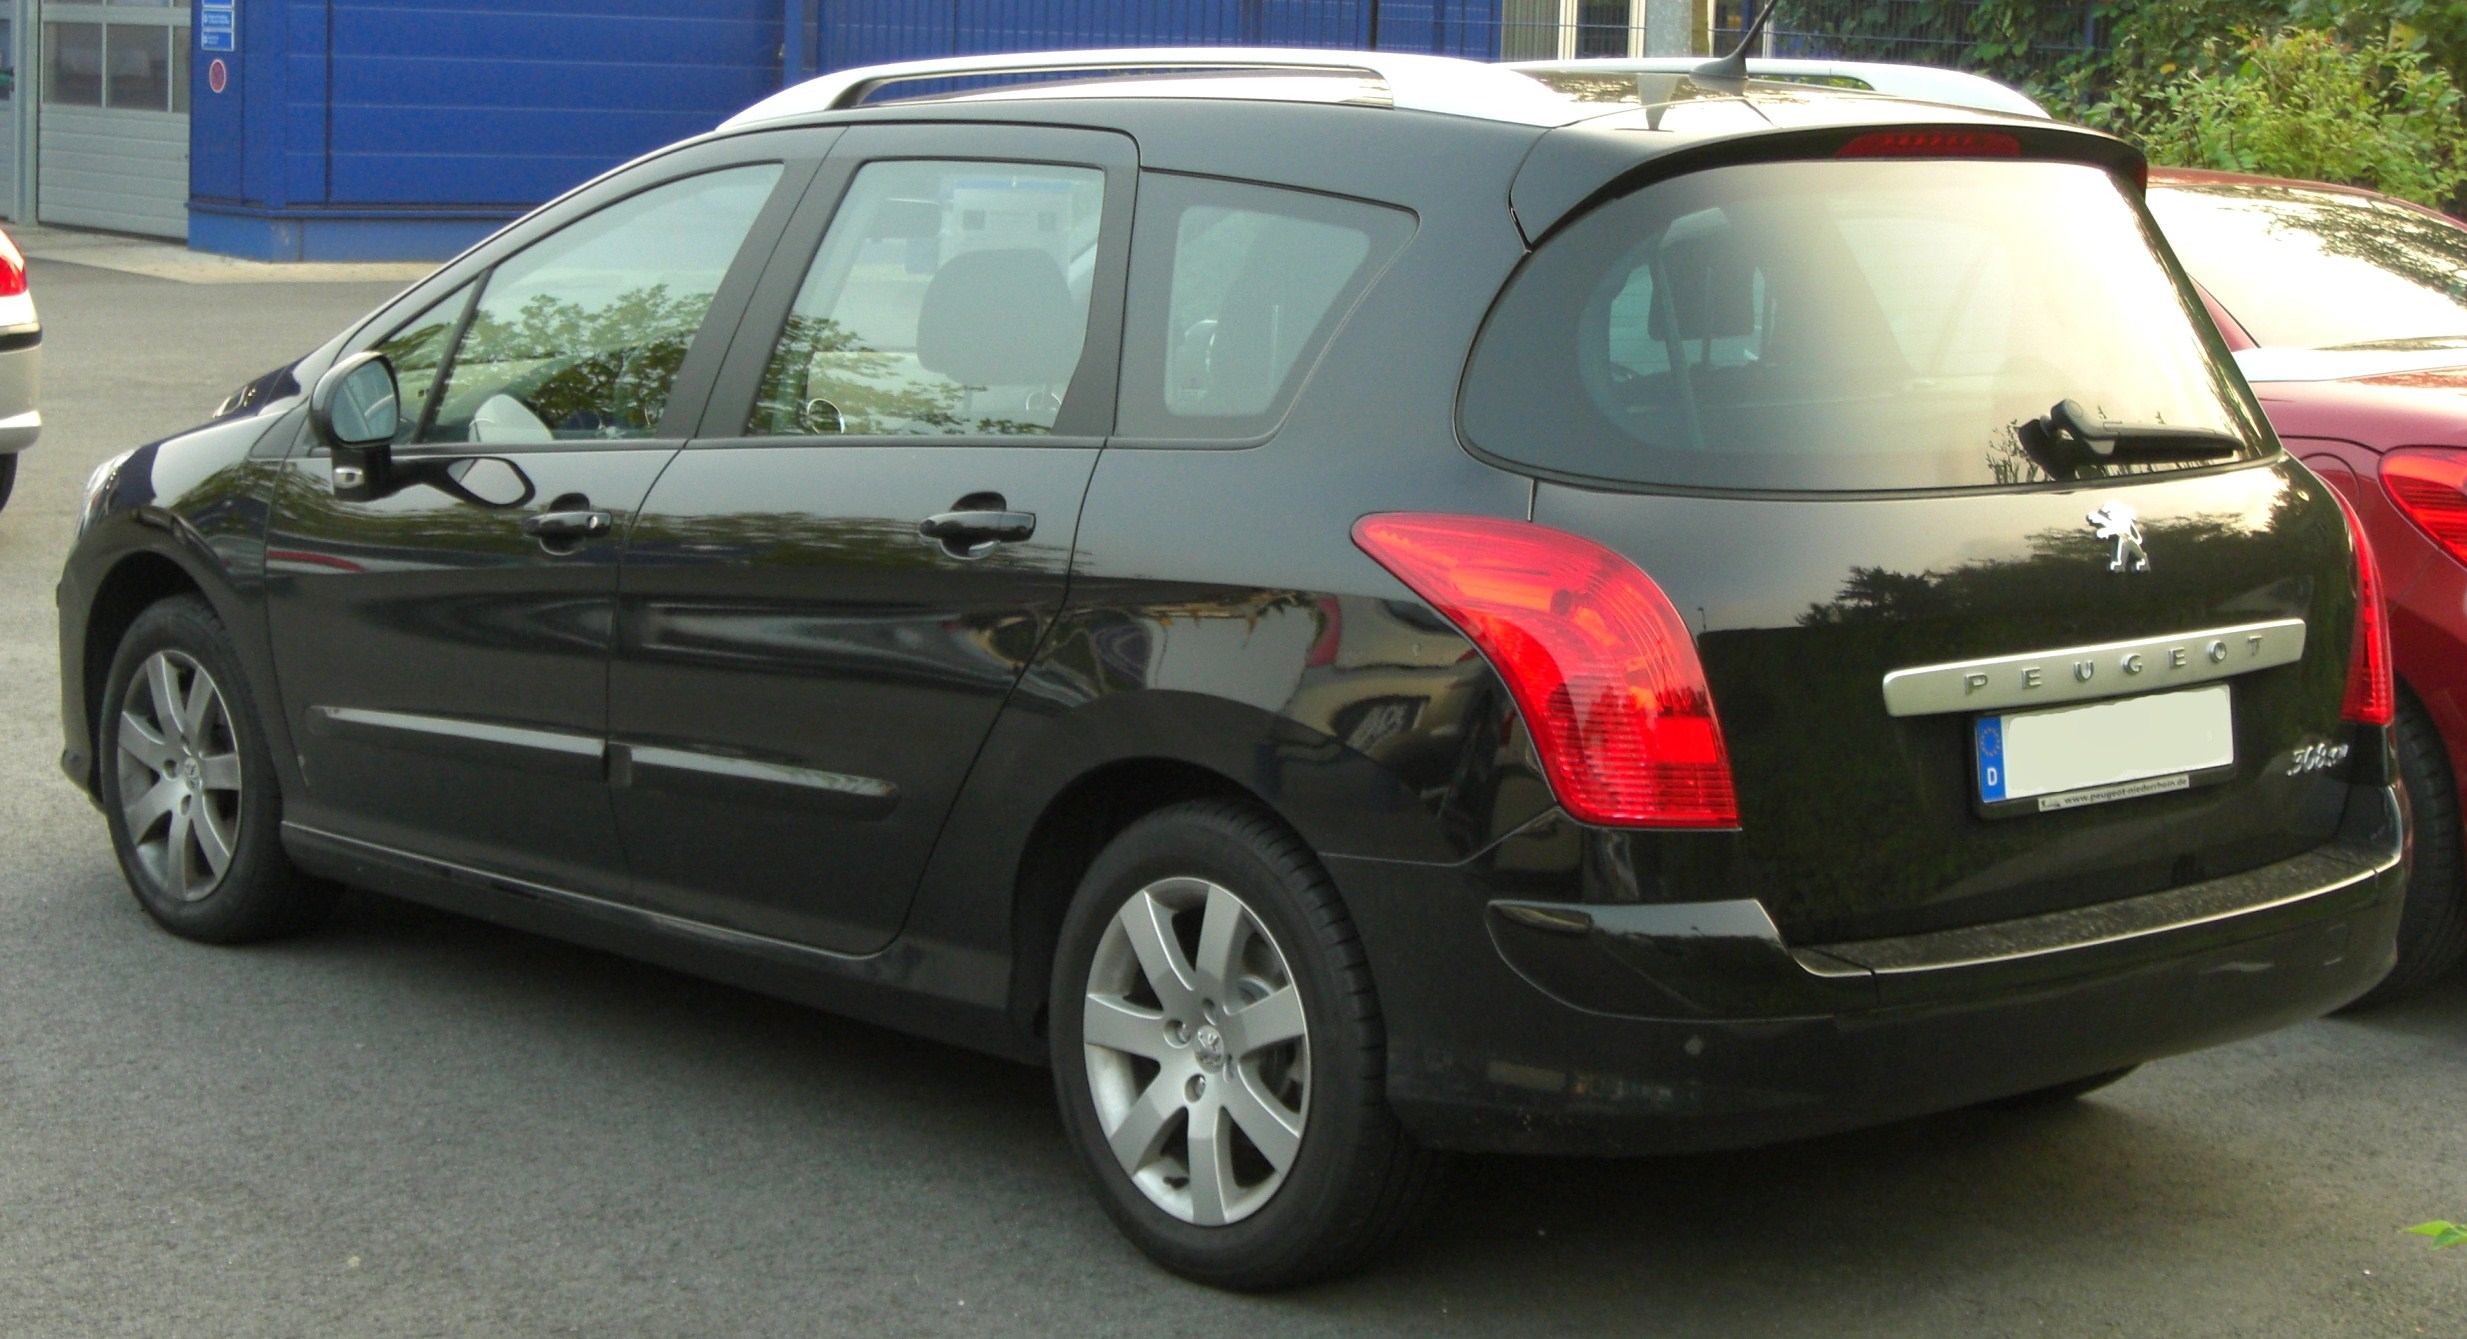 peugeot 307 station wagon 2012 pictures #13